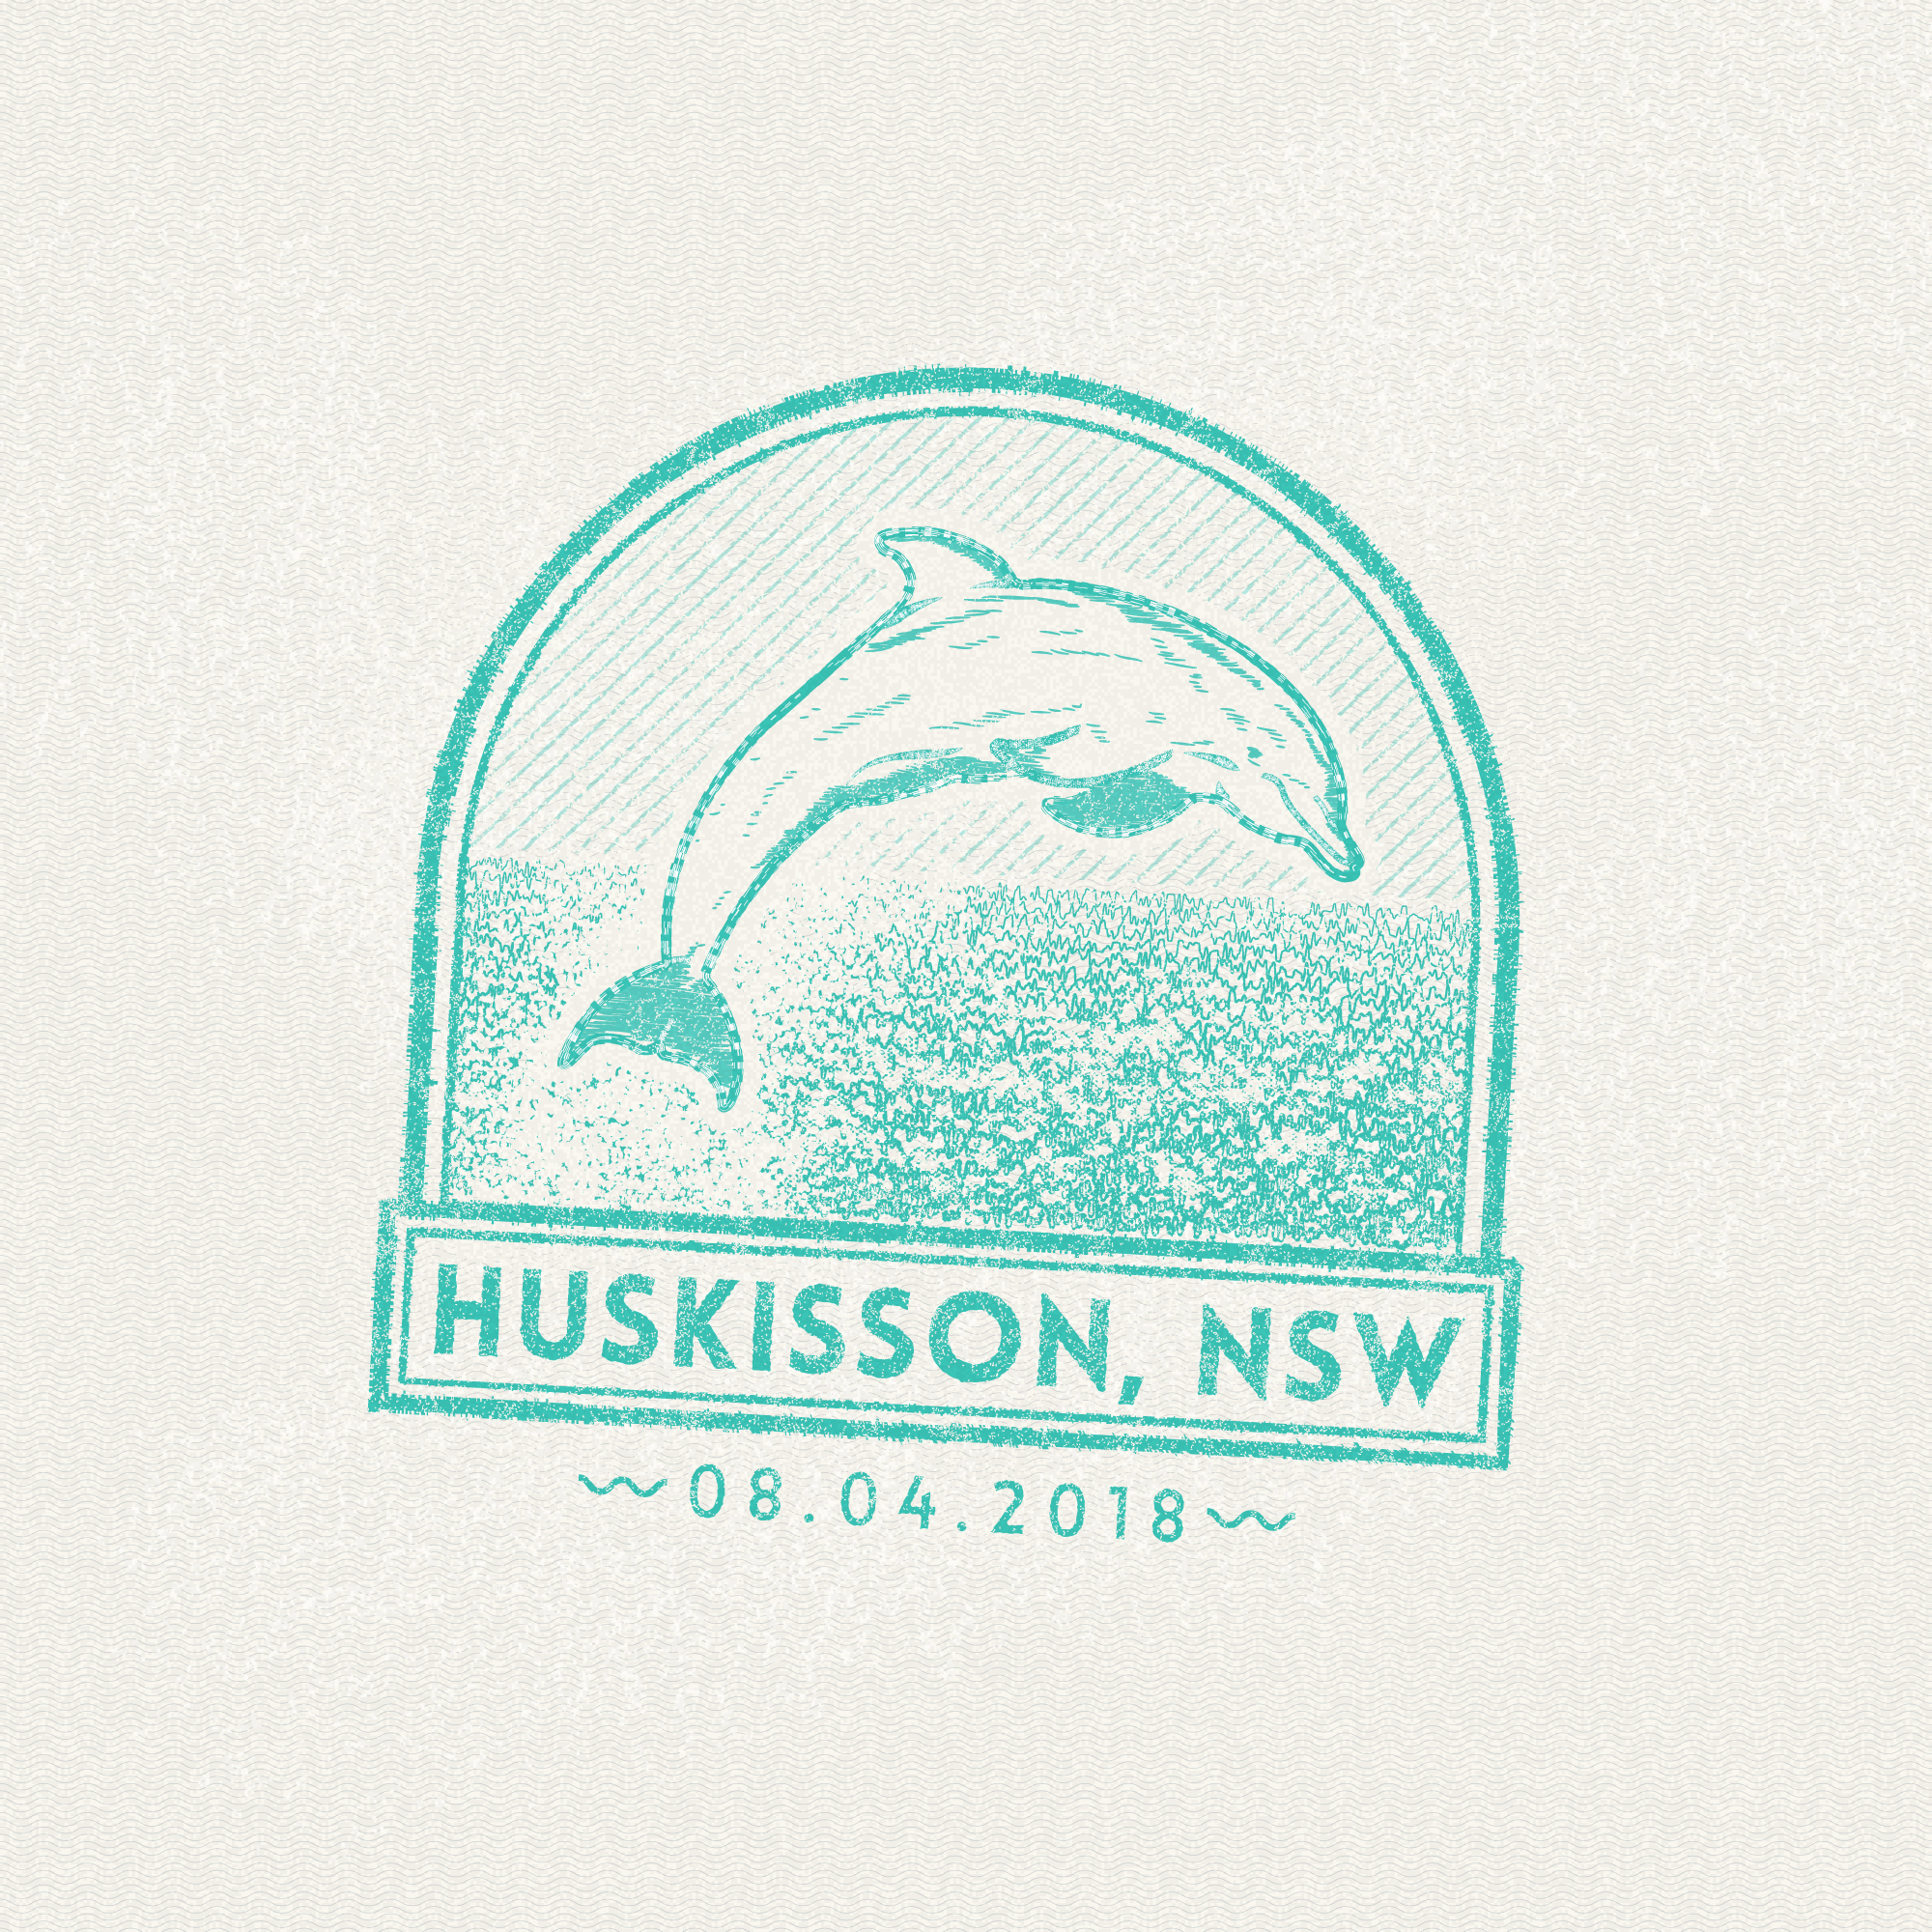 Huskisson, NSW passport stamp